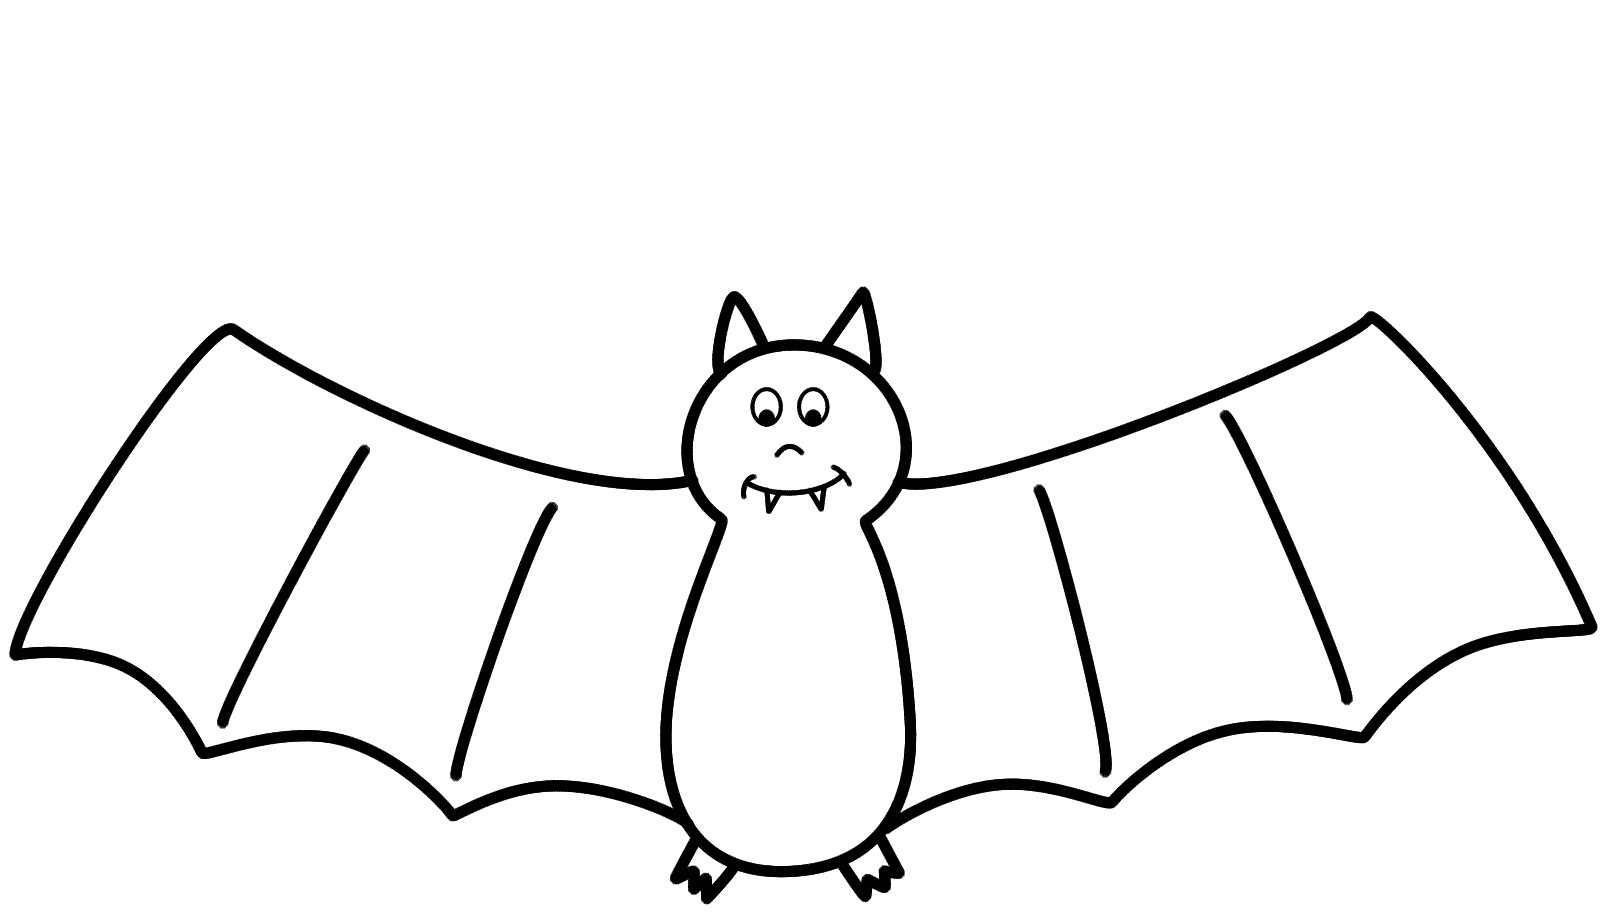 Bat Coloring Pages House Plans Games Online 16 On House Plans Games Online